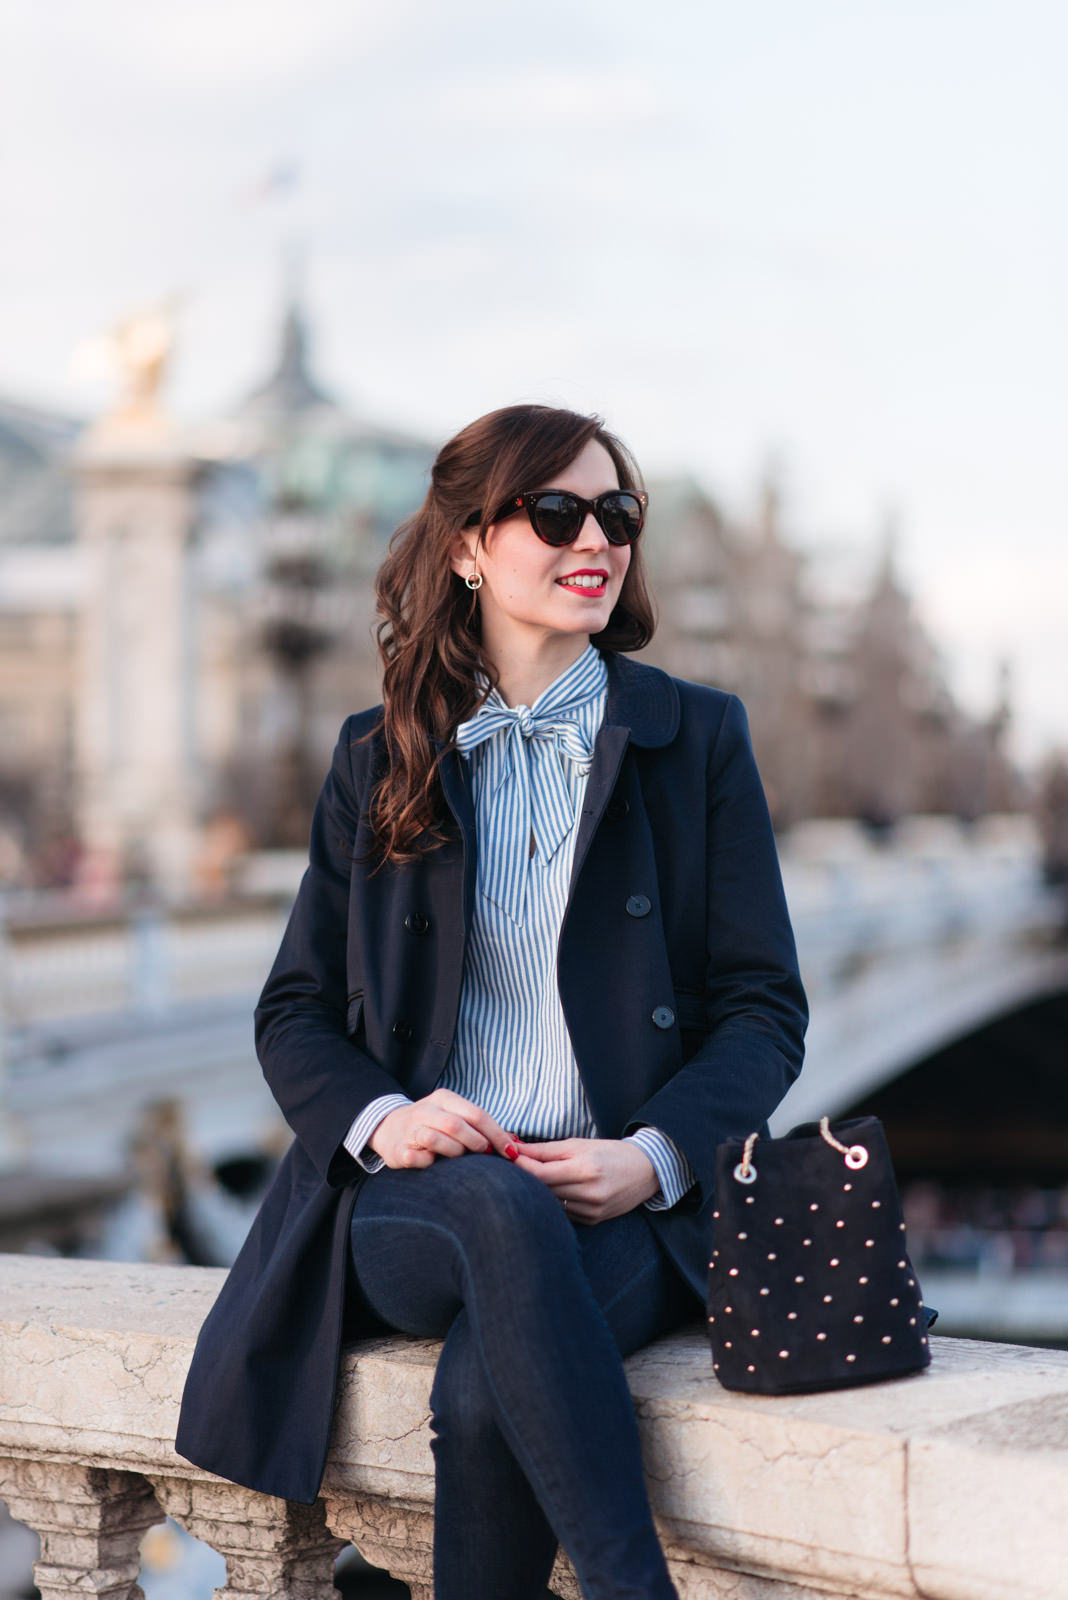 Blog-Mode-And-The-City-Looks-En-Sezane-Sur-Le-Pont-Alexandre-III-4